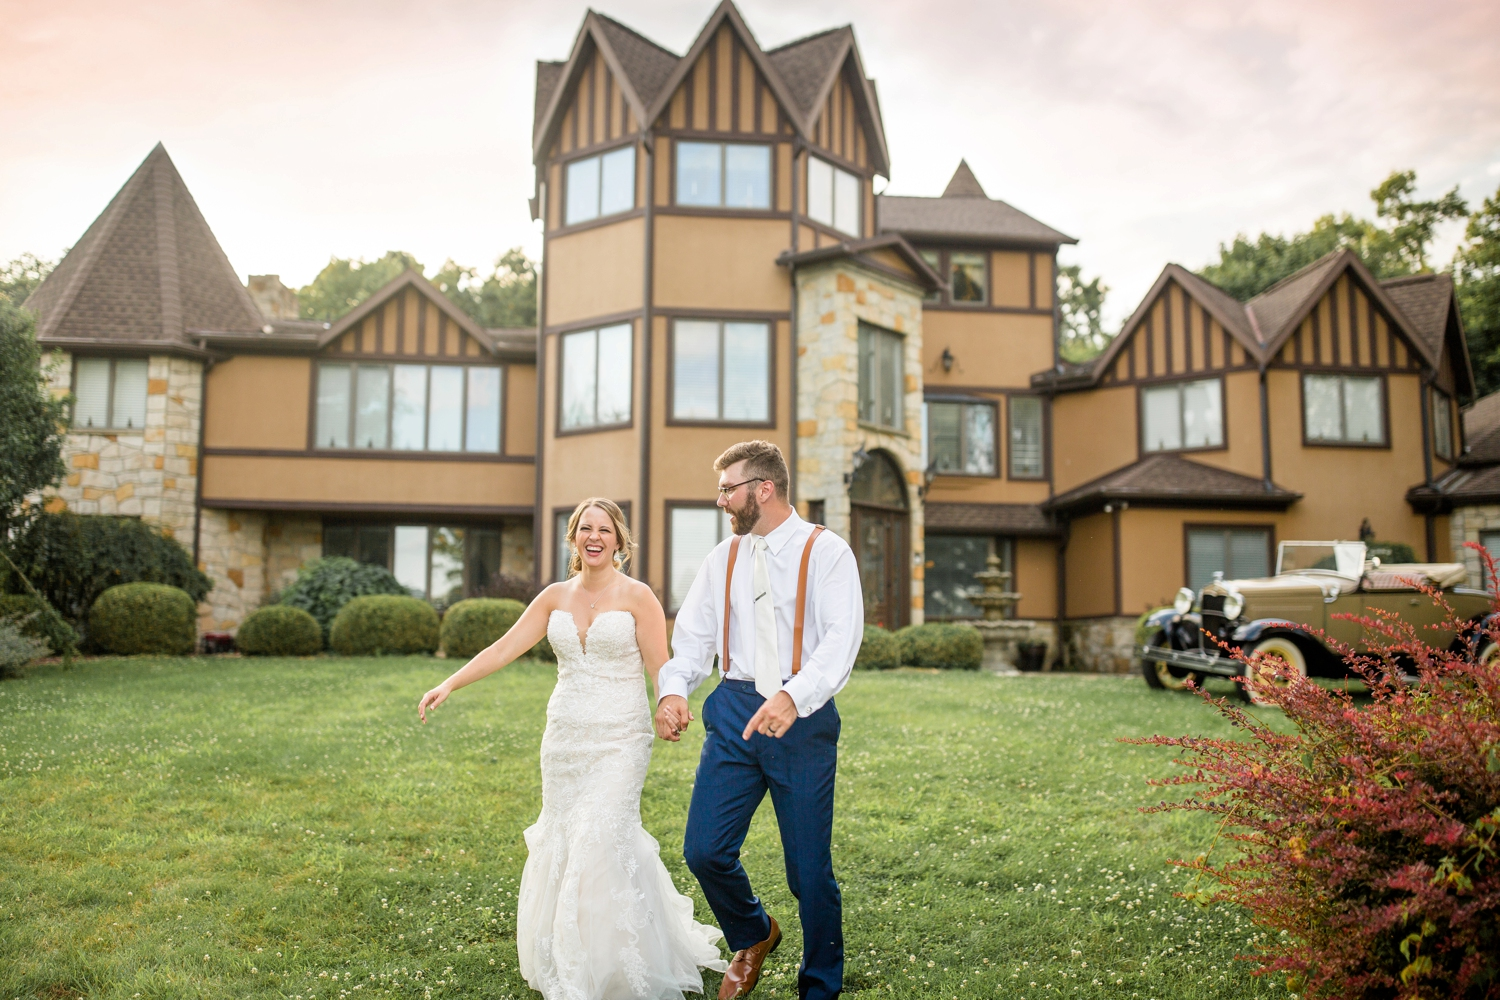 pittsburgh wedding photographers, the grand estate at hidden acres wedding photos, pittsburgh wedding venues